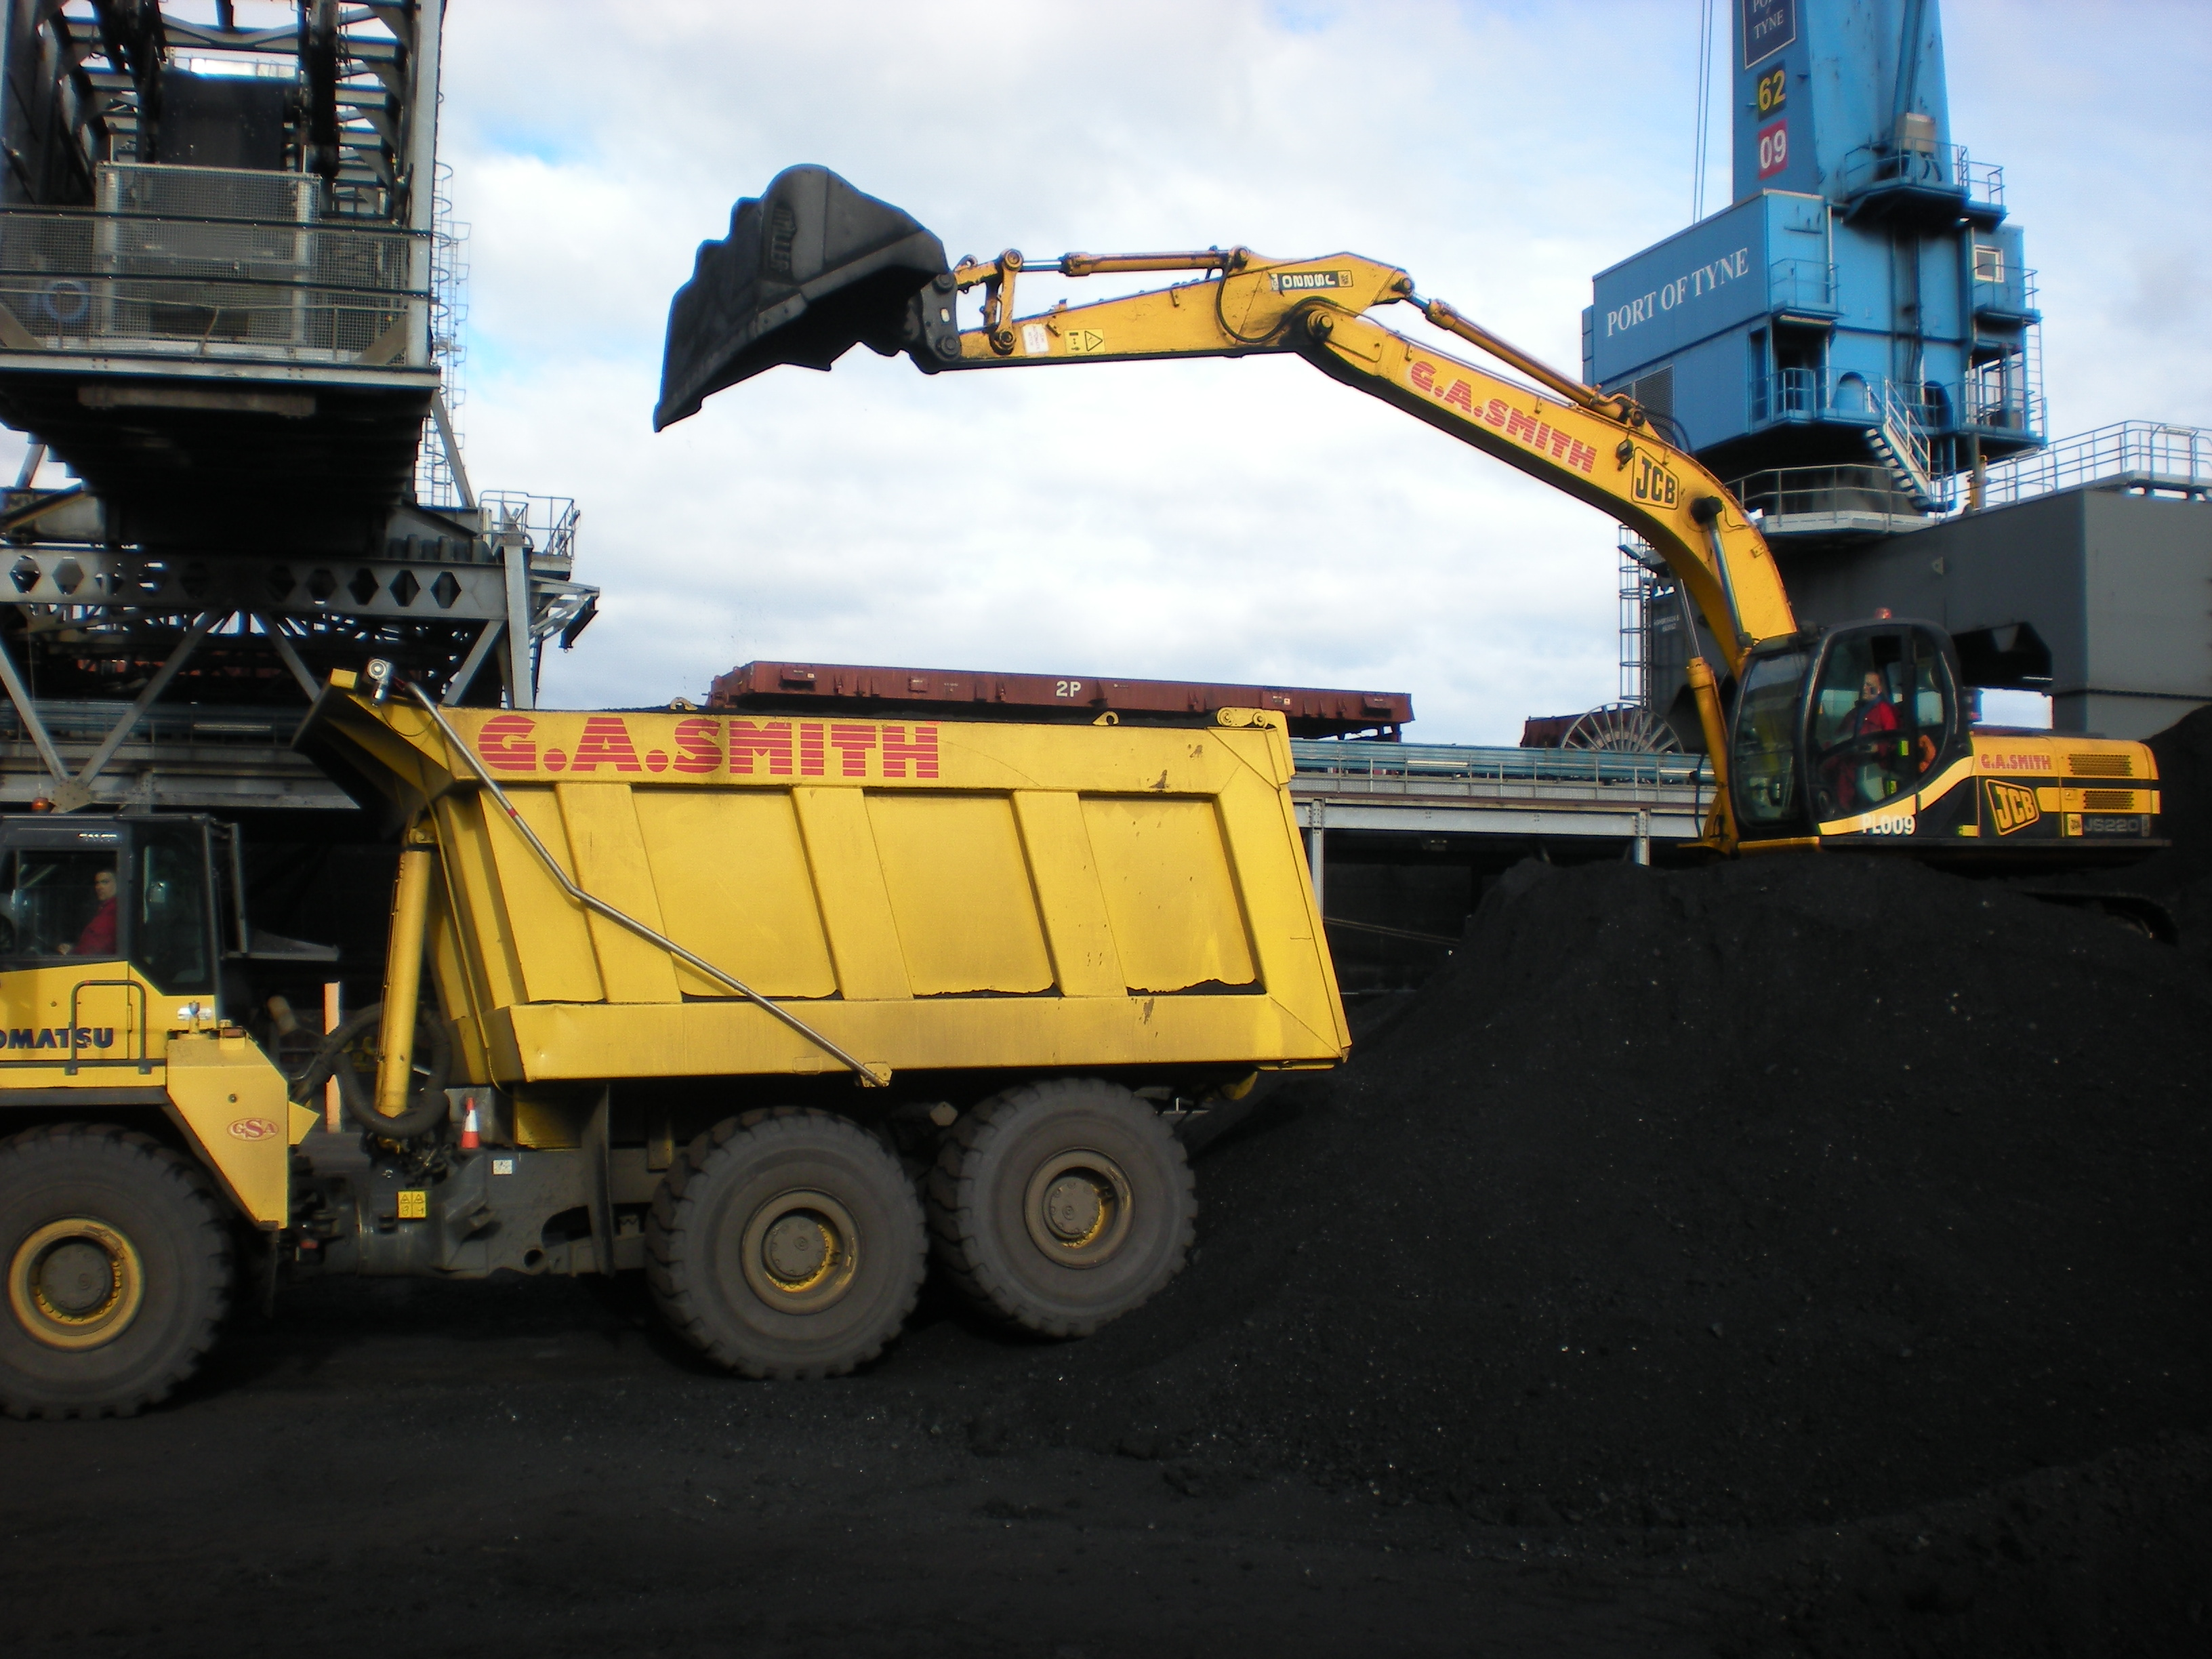 port of tyne coal operations and biomass operations 024.jpg